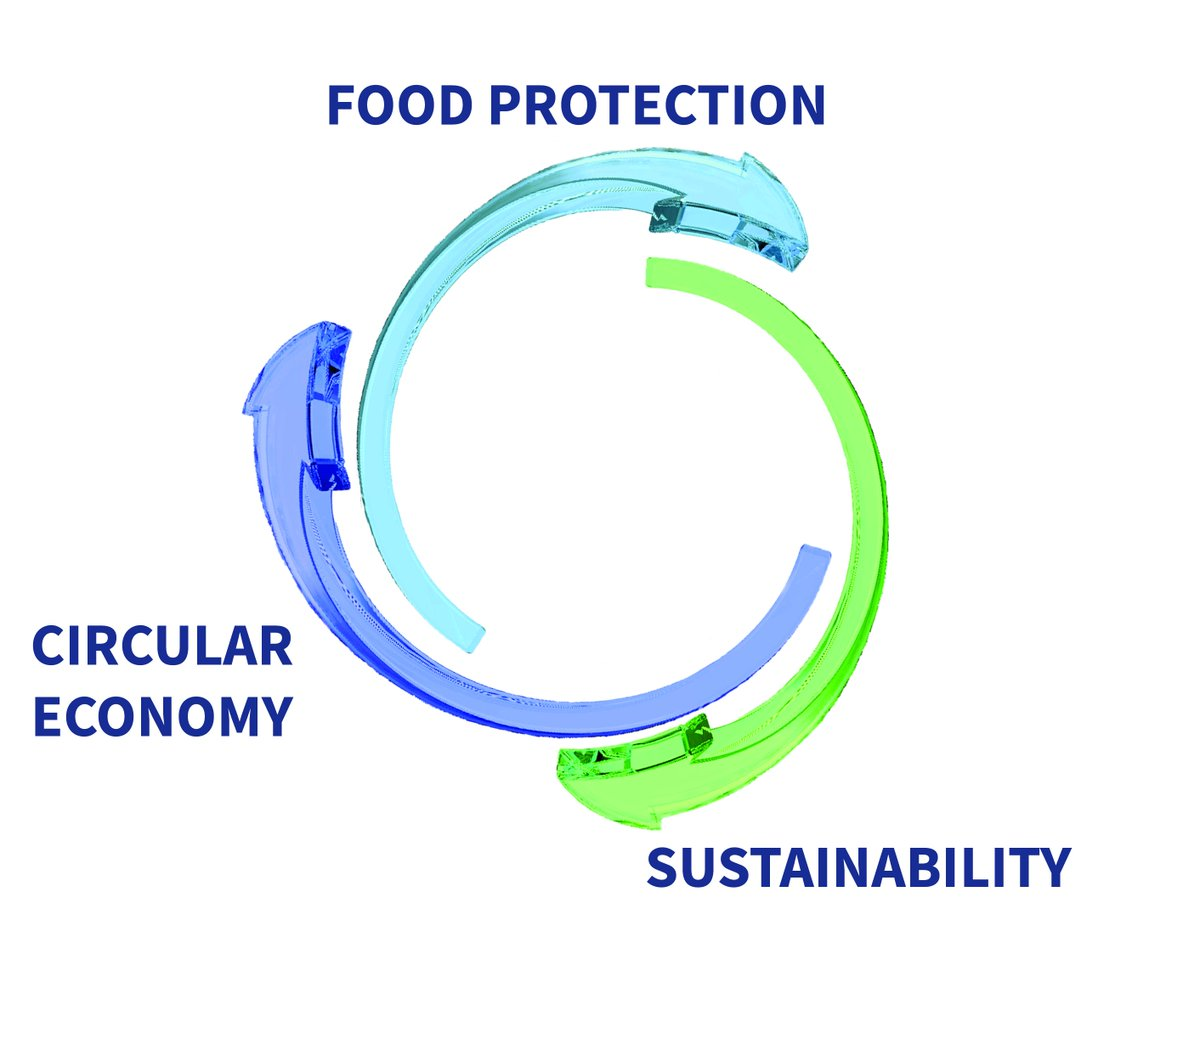 It's time to think about our planet! Circular Economy, Food Protection and Sustainability are the basis for us to develop innovative packaging films. #WorldEnvironmentDay2018 bit.ly/2M2EoAf